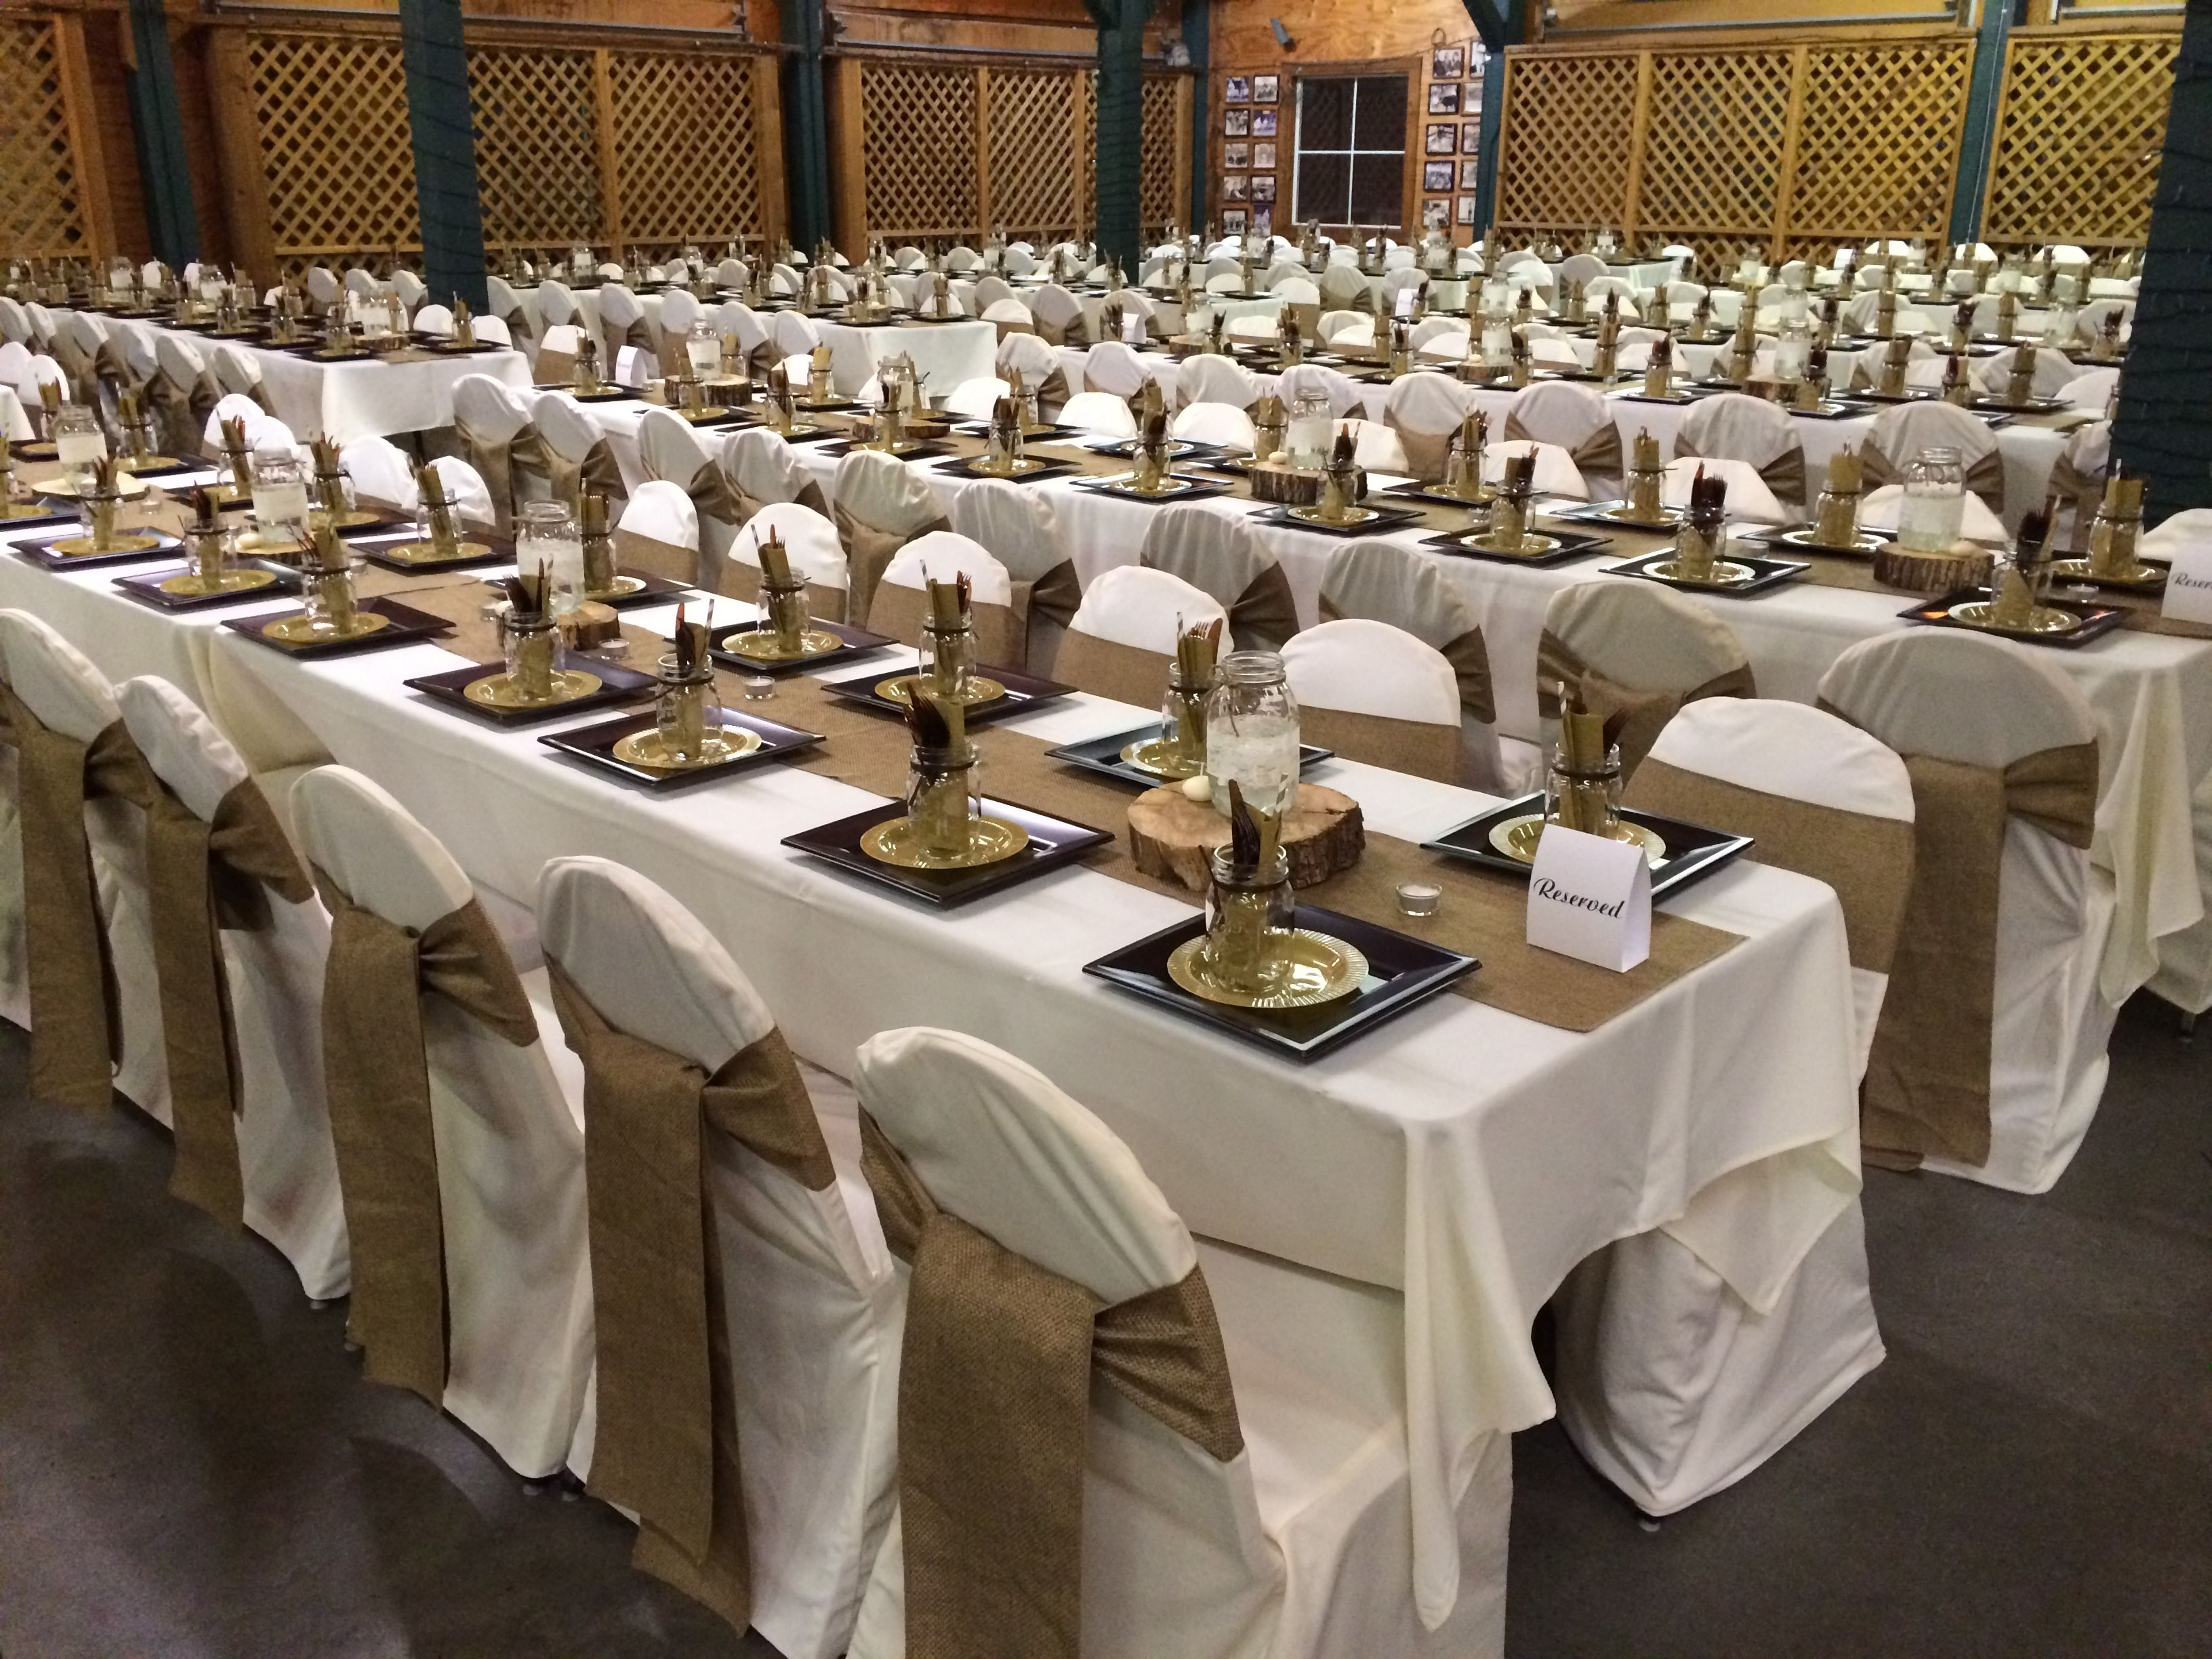 rent tablecloths and chair covers polywood folding adirondack chairs burlap table runners sashes ivory